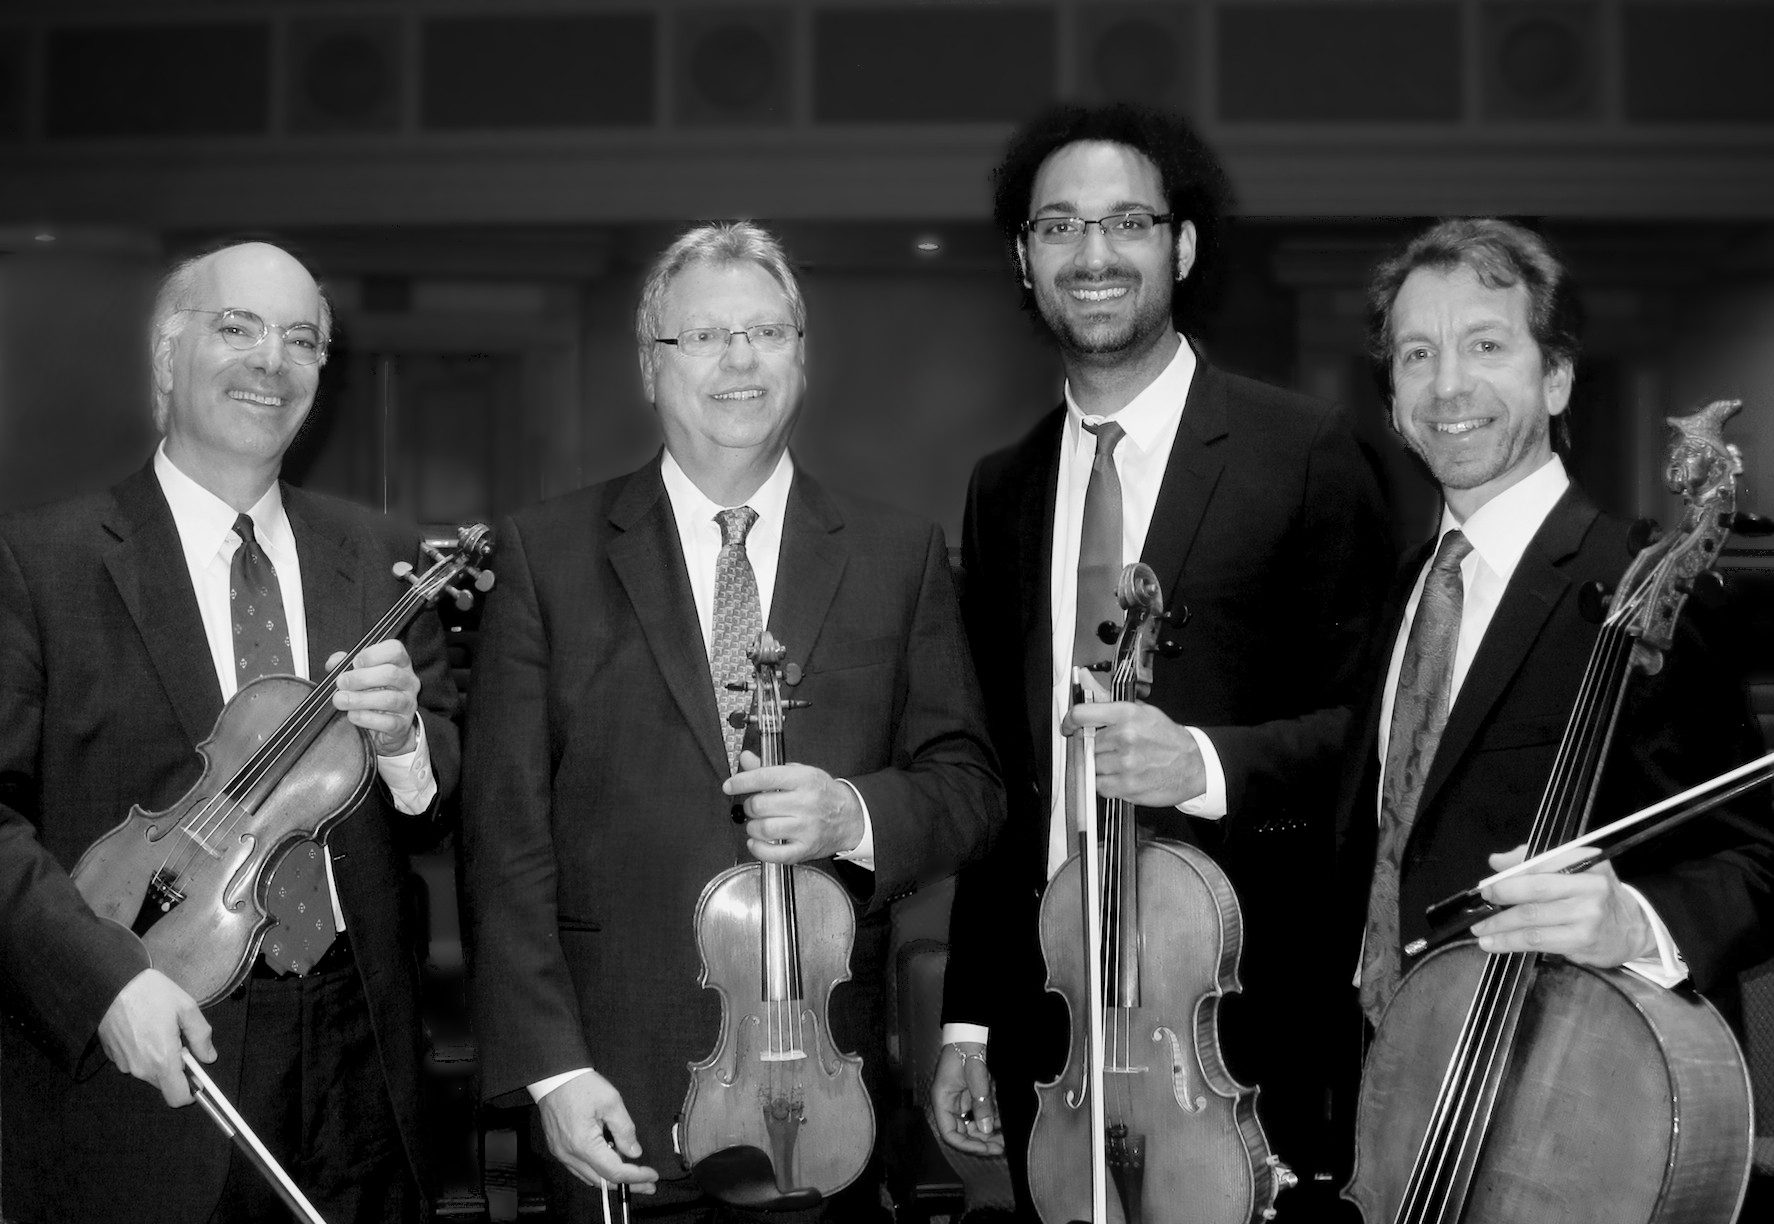 Violinists Ralph Evans and Efim Boico, violist Juan-Miguel Hernandez and cellist Robert Cohen